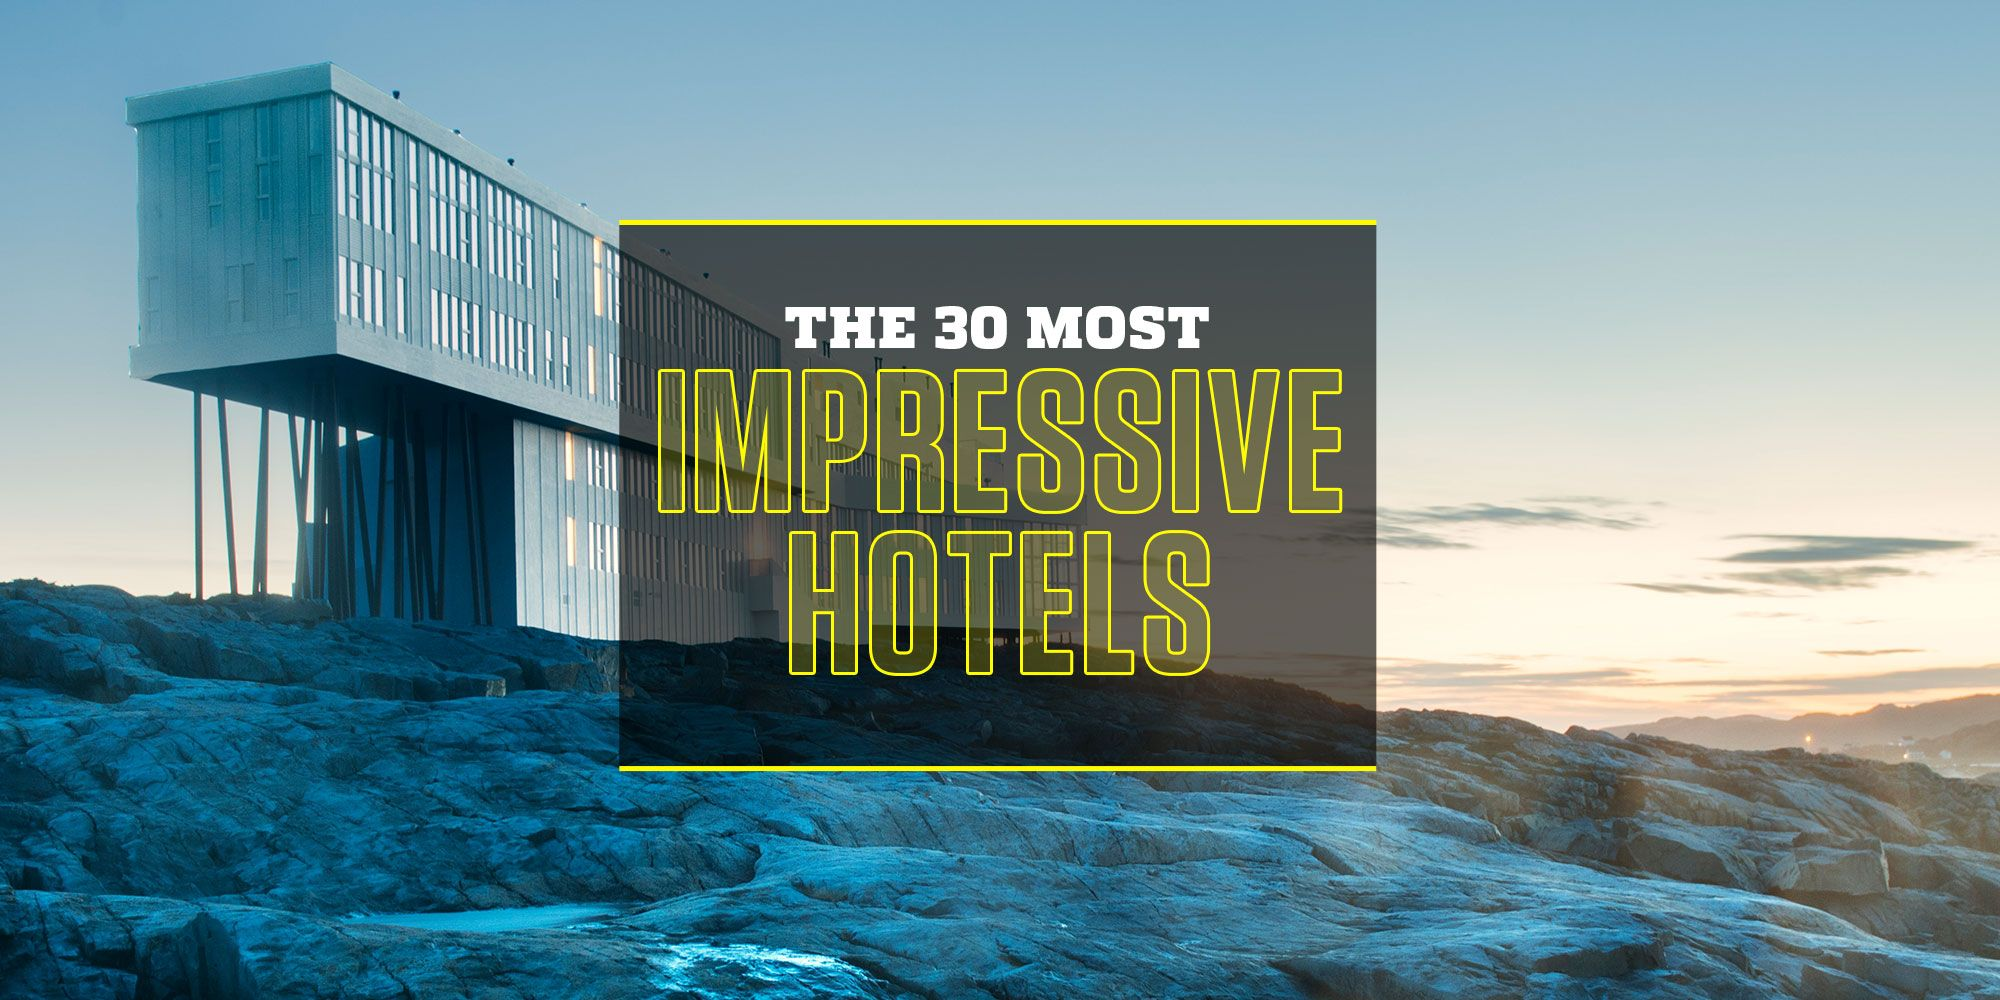 The World's 30 Most Impressive Hotels